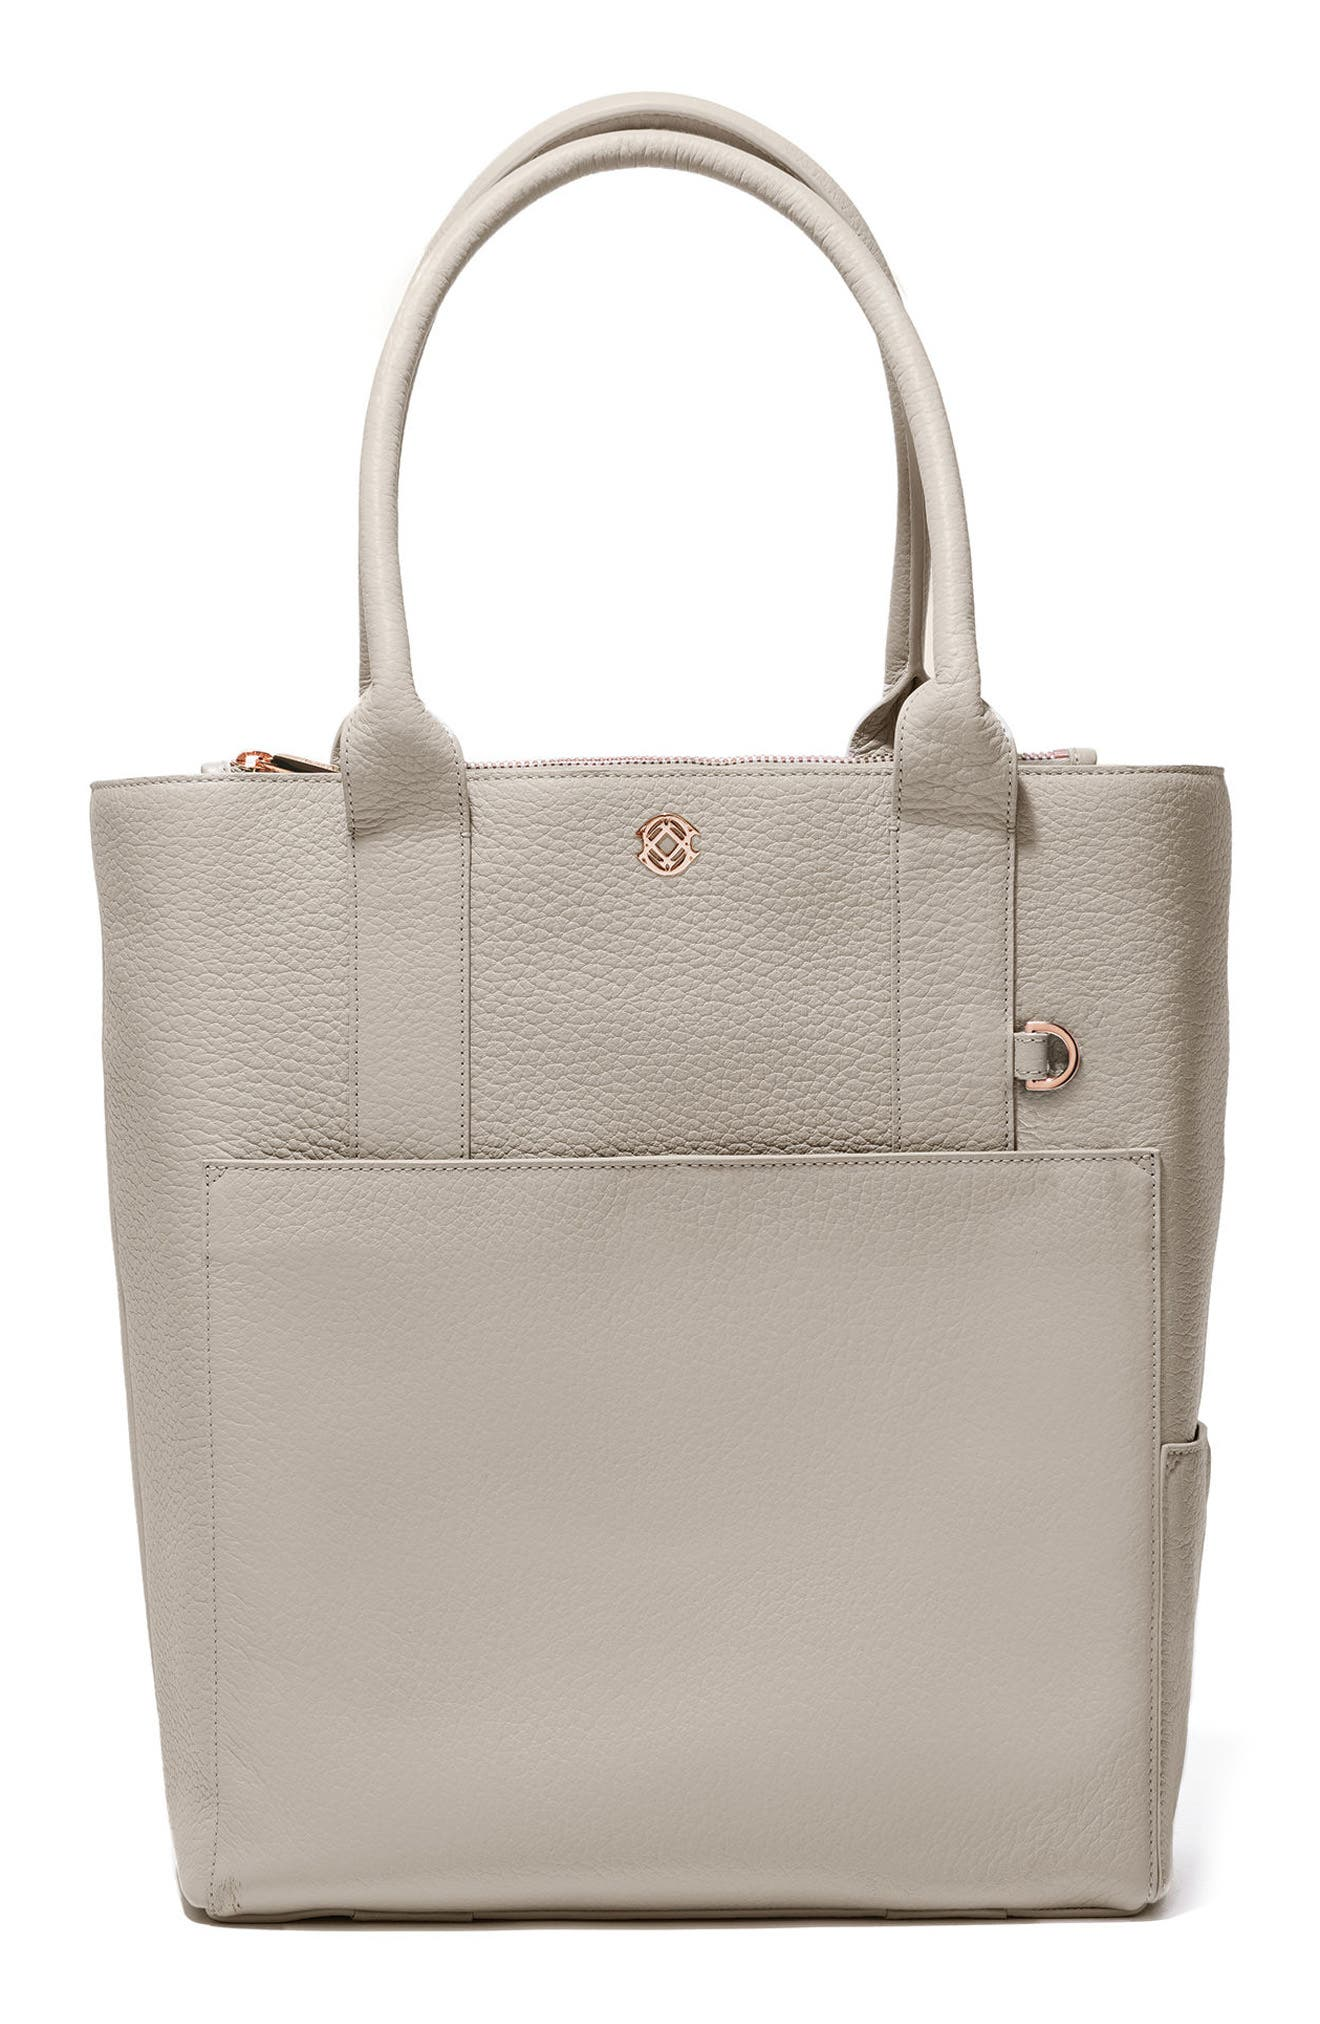 Charlie Leather Tote,                         Main,                         color, Bone